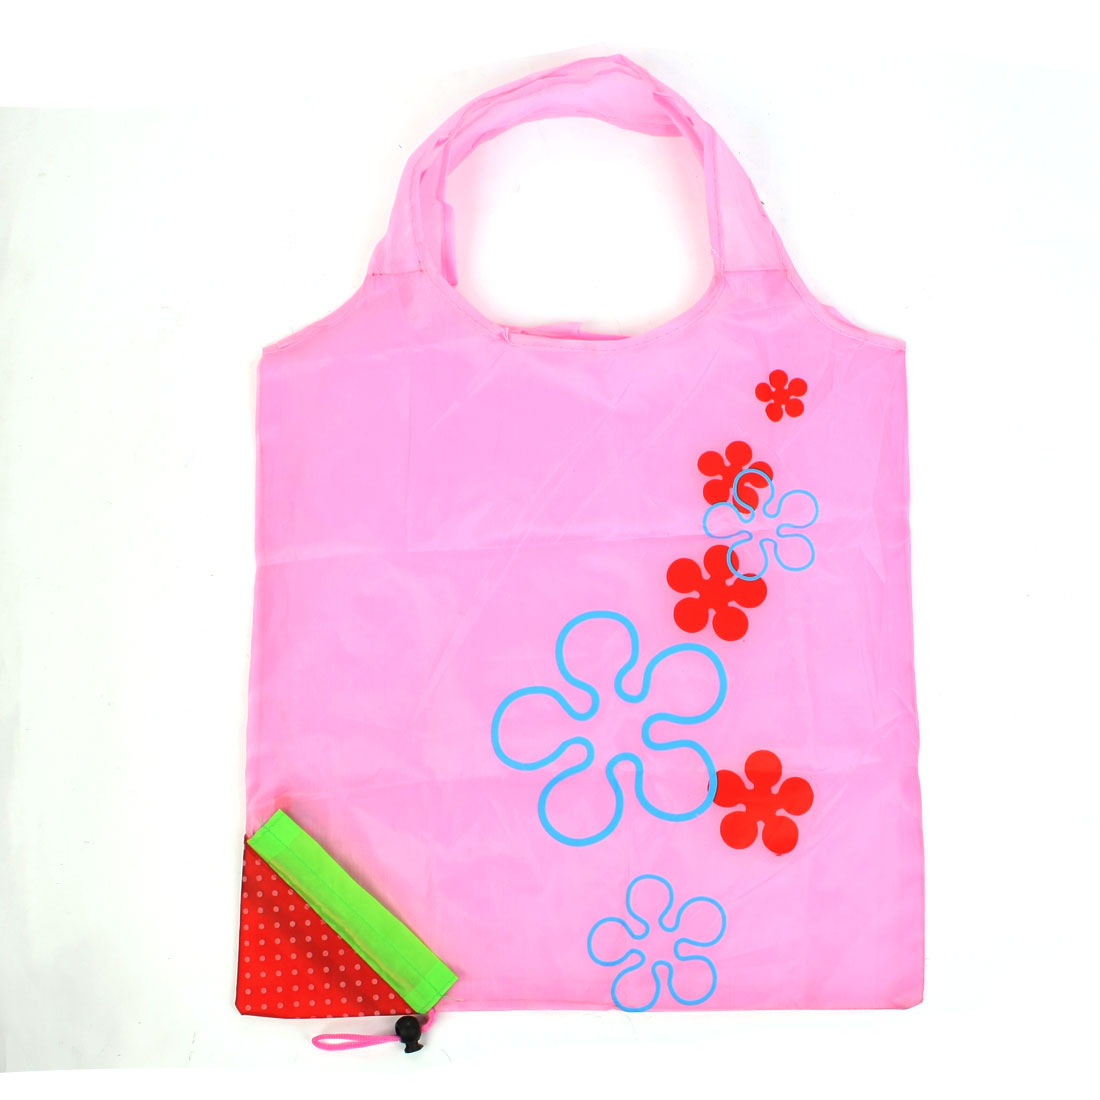 Dotted Strawberry Design Pink Red Reusable Shopping Bag